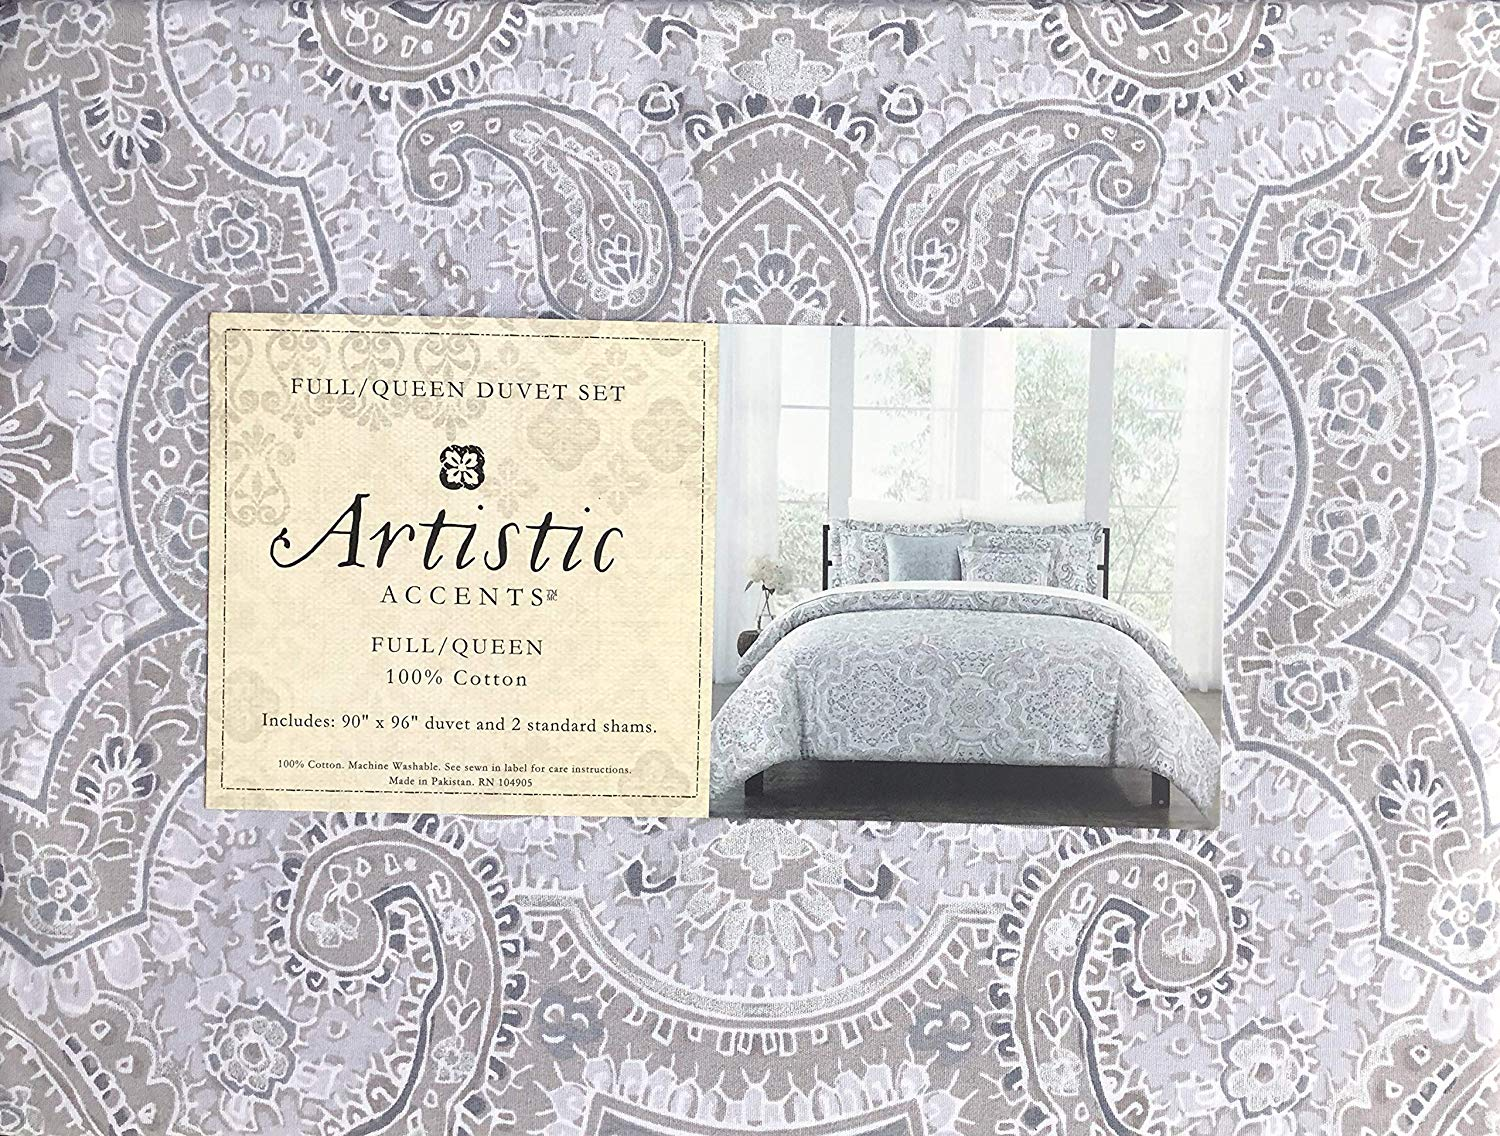 artistic accents bedding piece full queen size duvet tablecloth comforter cover set intricate geometric medallion pattern shades purple white taupe door cabinet table for lamp